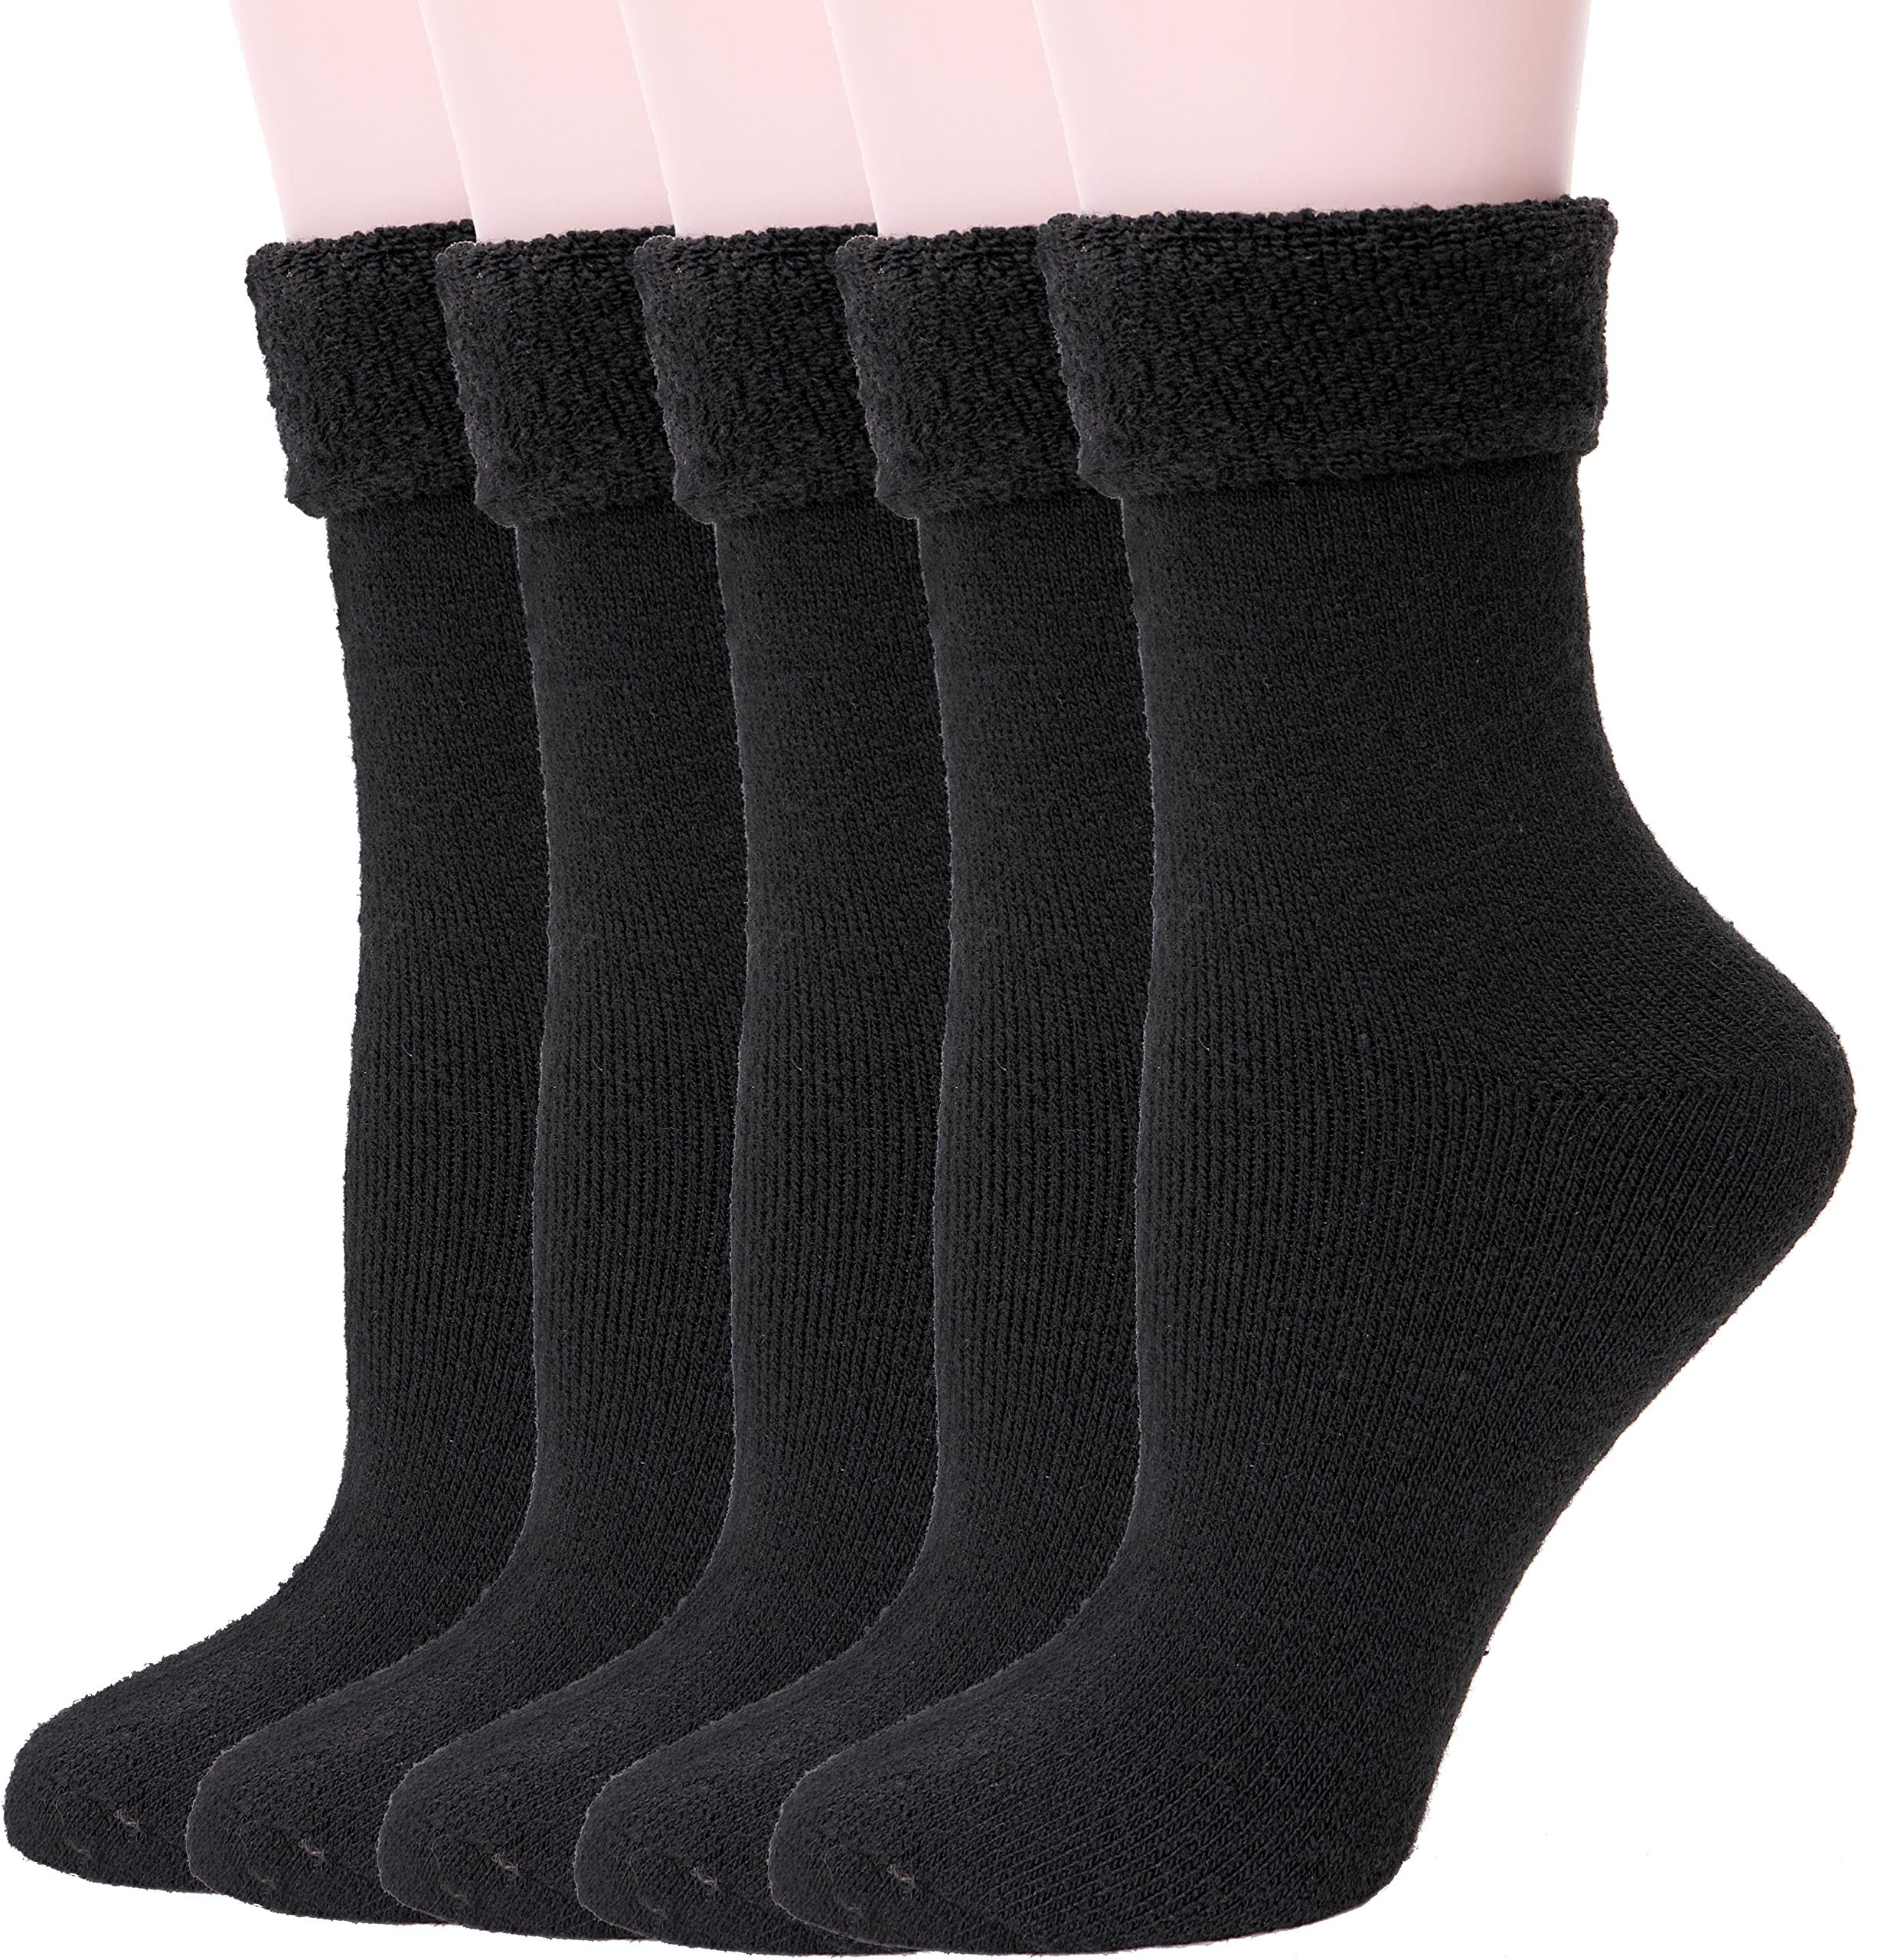 EBMORE Womens Wool Fuzzy Socks Thick Warm Thermal Winter Fleece lined Crew Socks 5 pack (Black)